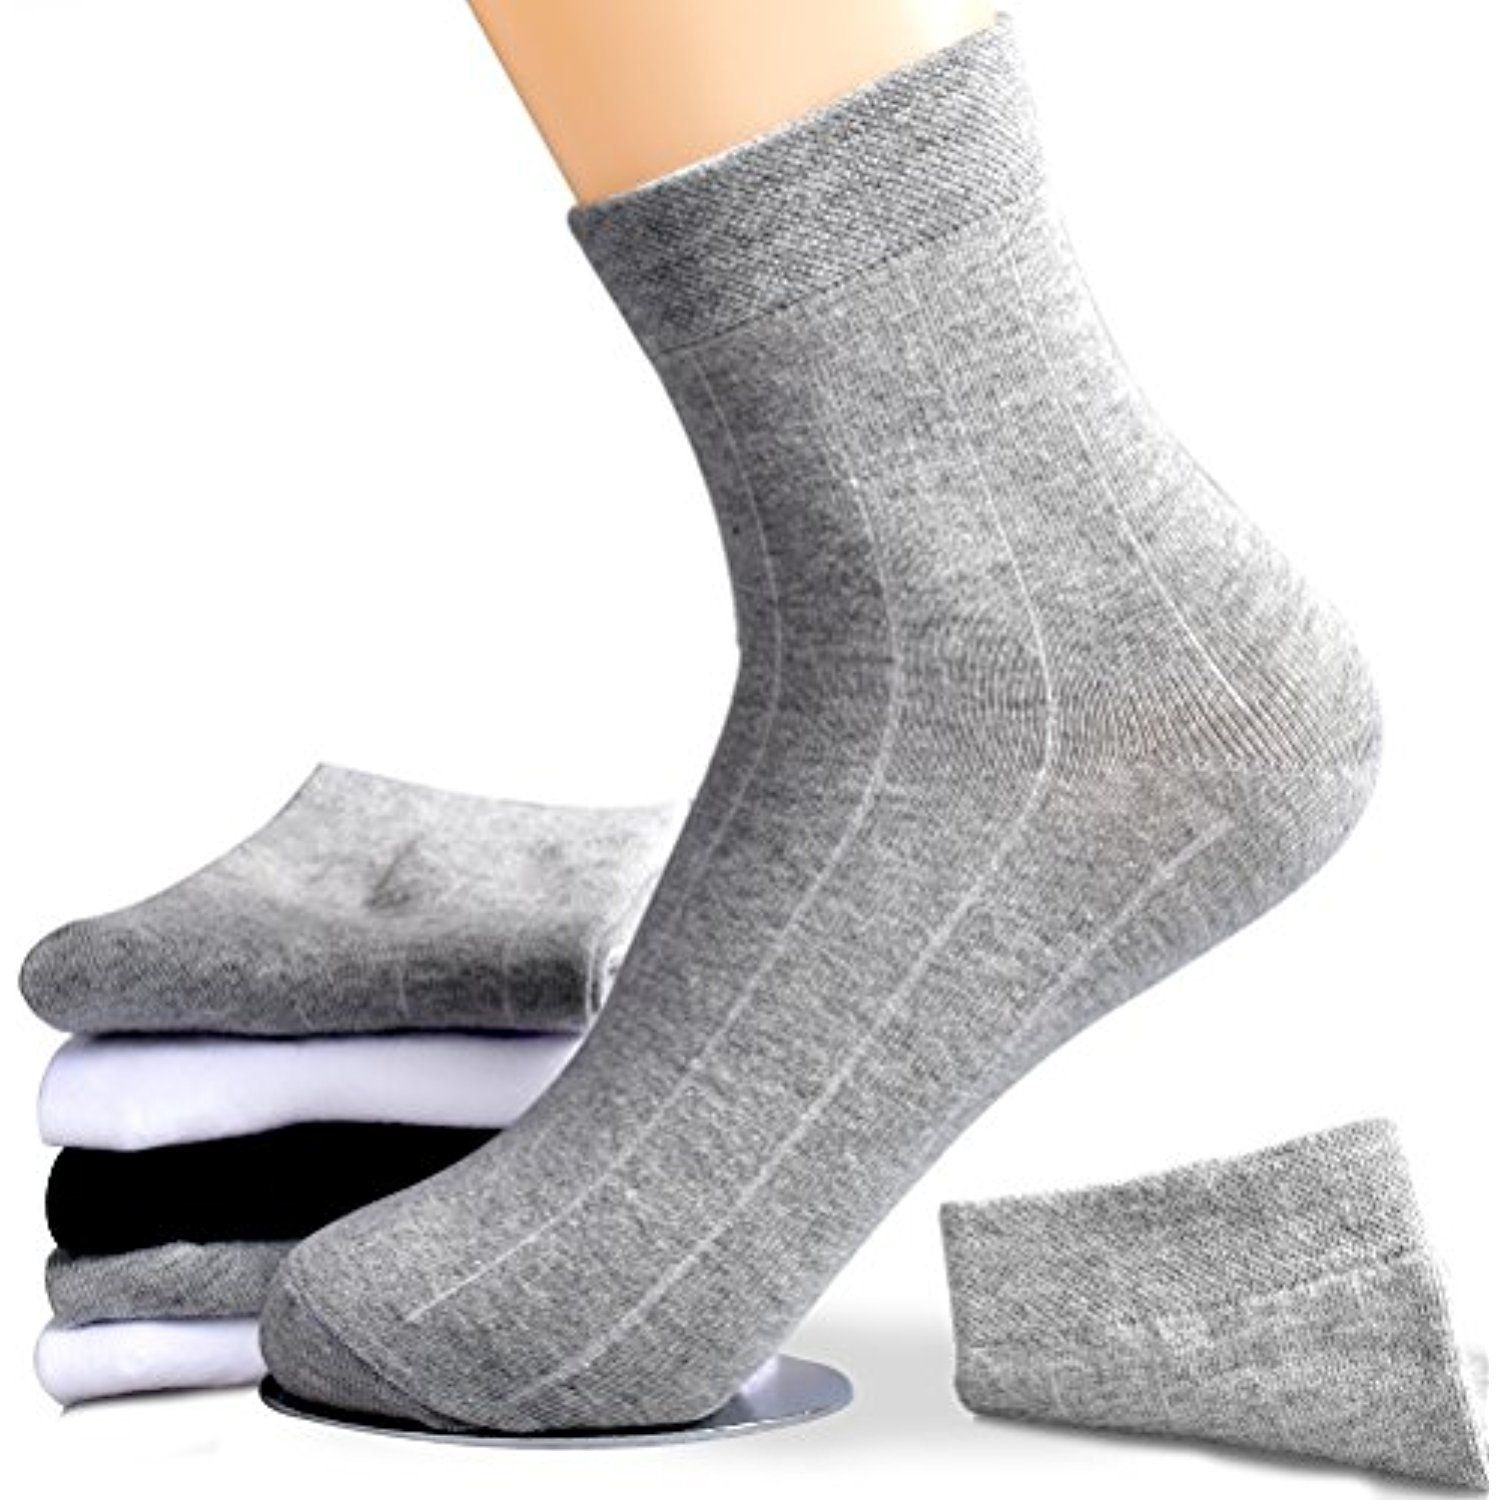 Ankle Socks Mens No Show Crew Socks for Athletic and Casual Use